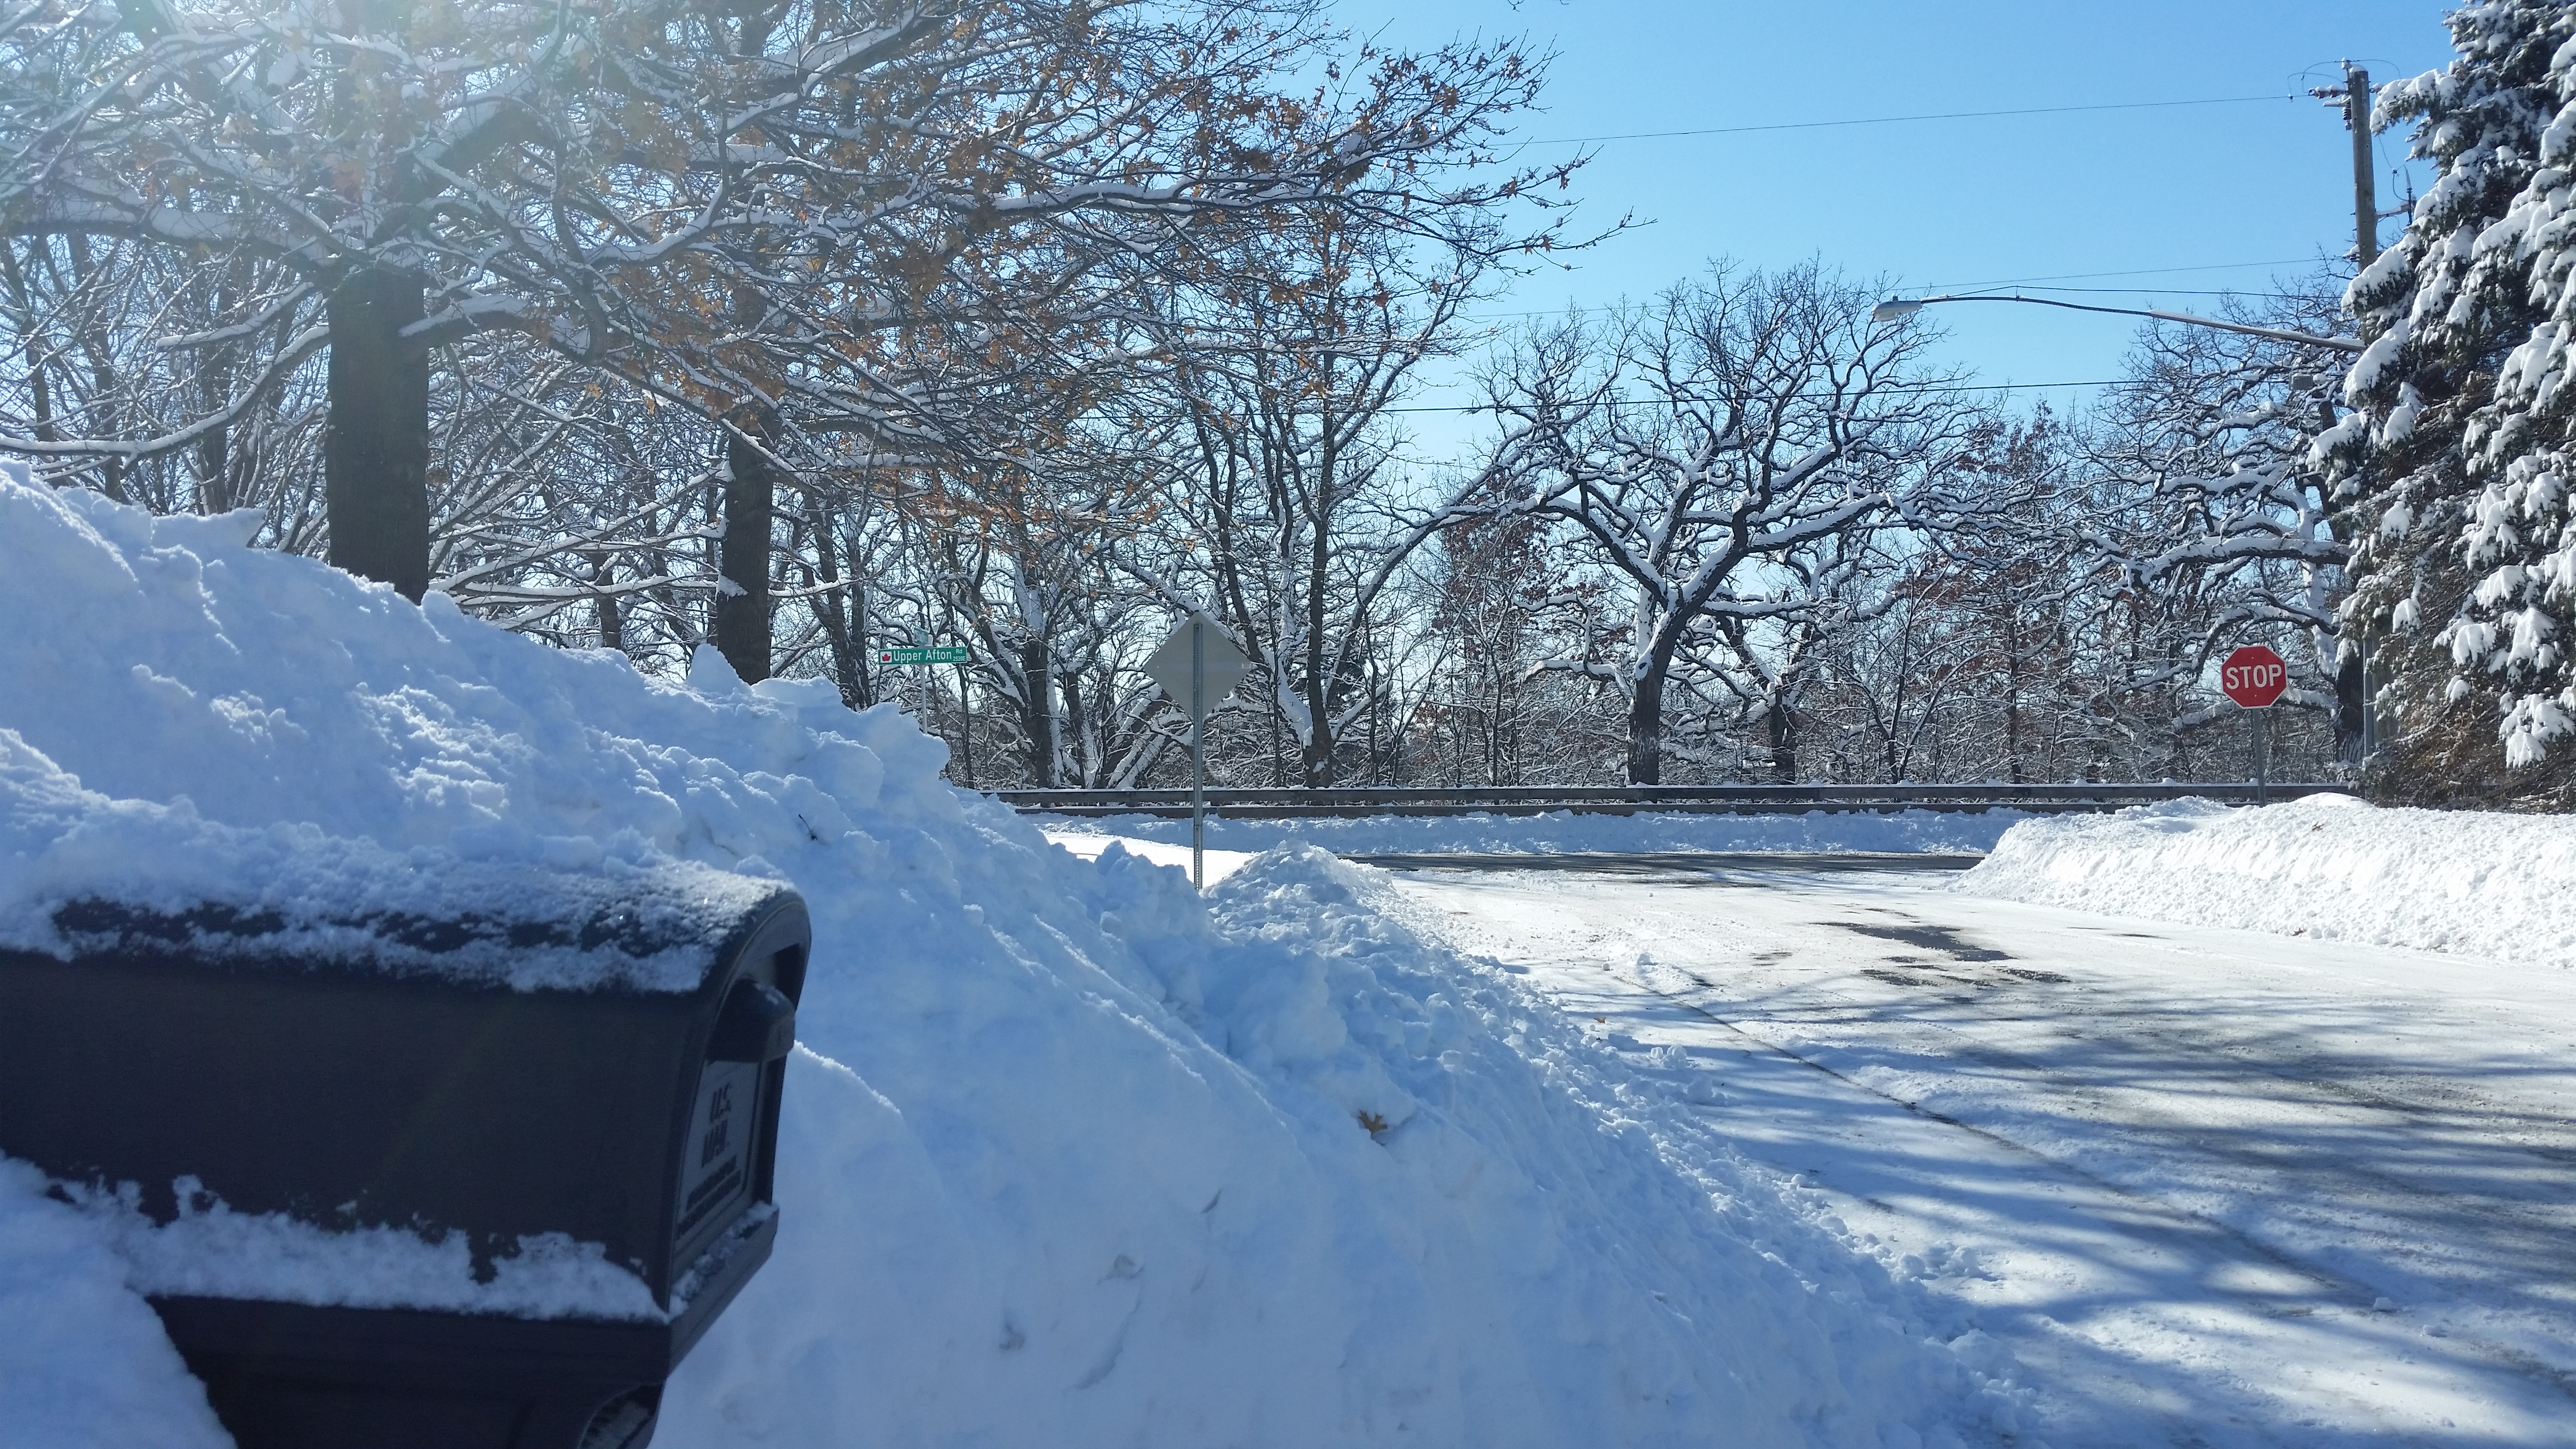 Snow Emergency Update: A Second Snow Emergency has been called in St. Paul